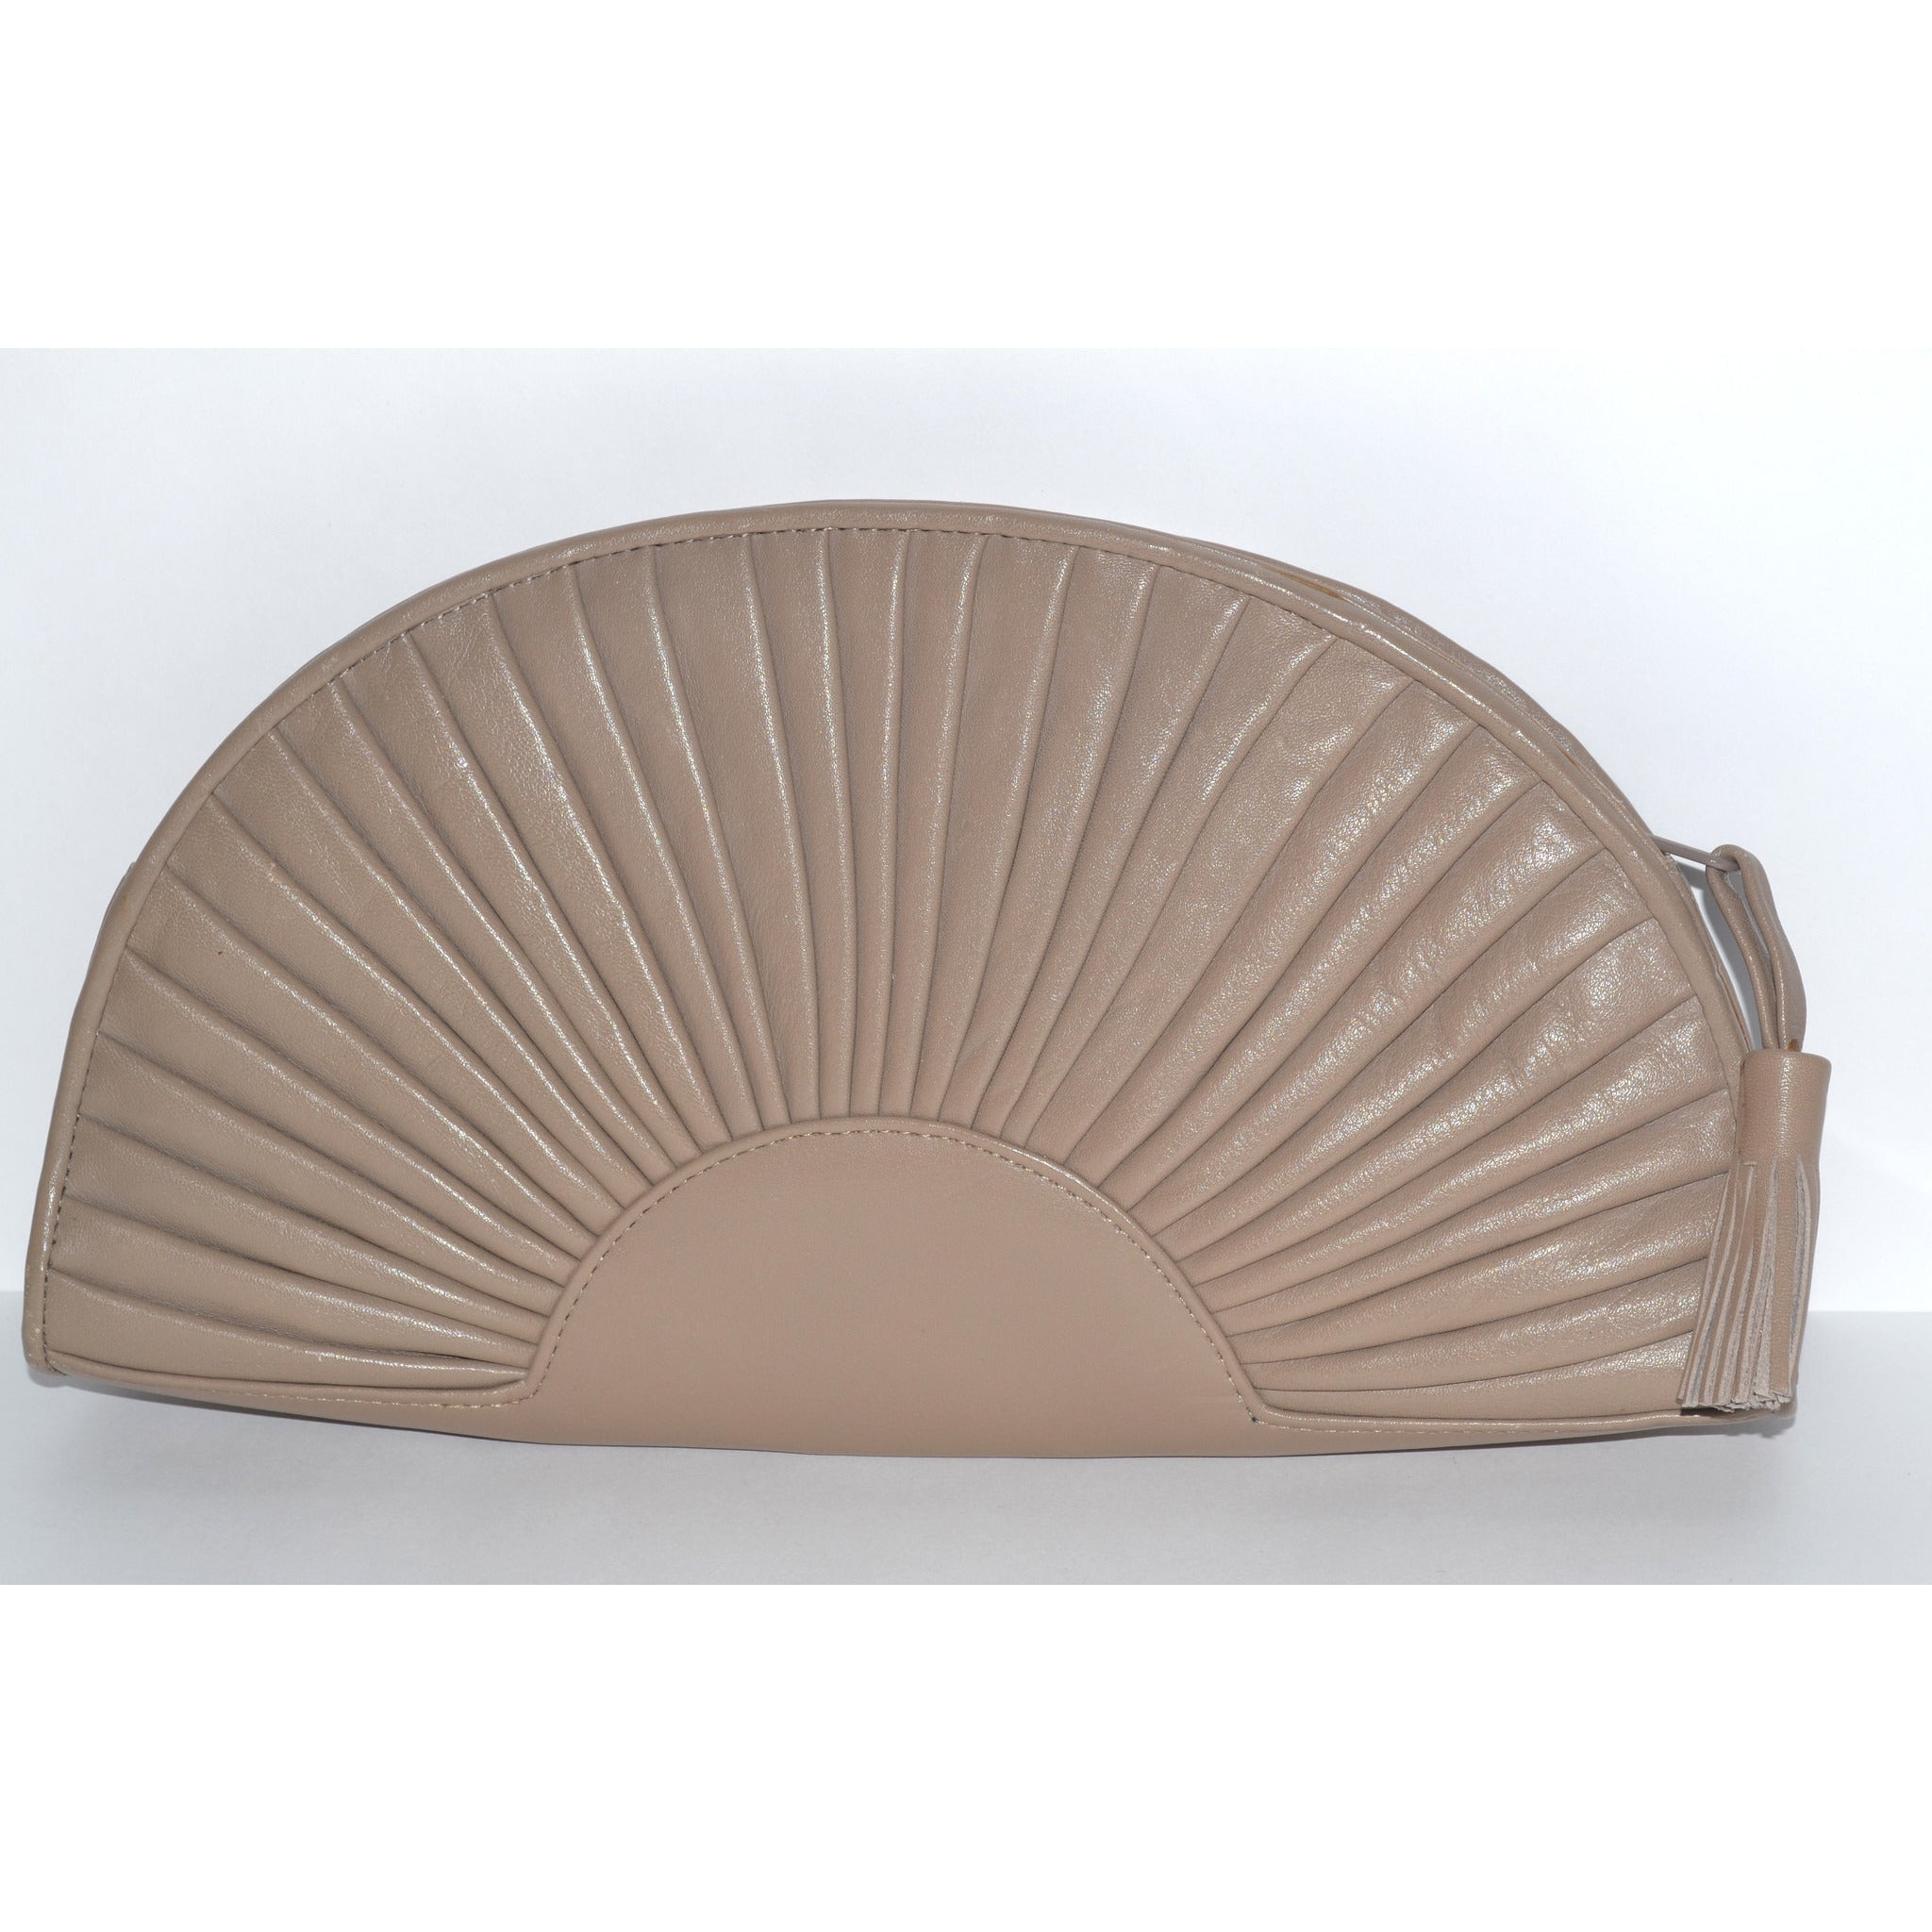 Vintage Taupe Leather Fan Purse